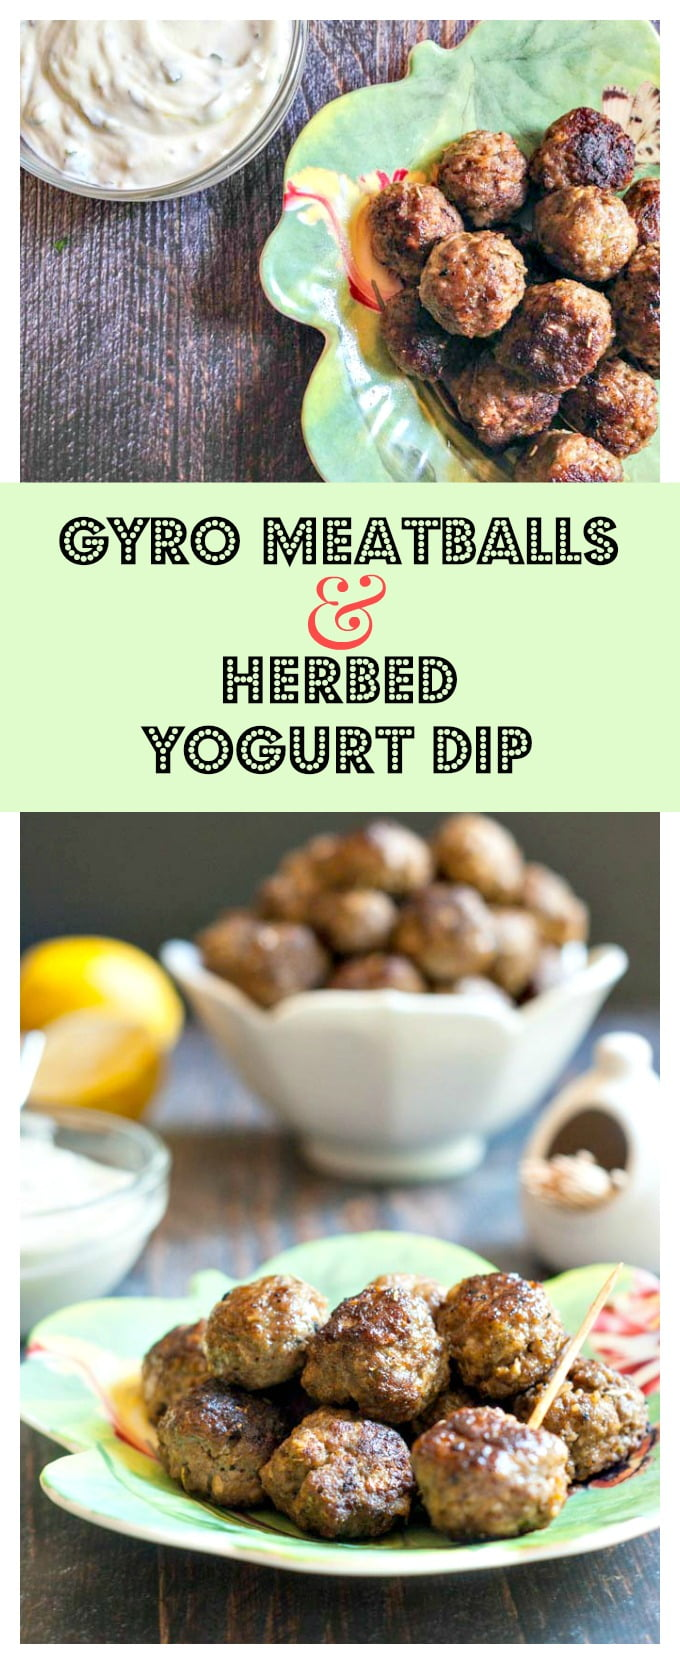 These gyro meatballs & herbed yogurt dip are a fun dish to make for any party. Meatballs with all those great gyro flavors and a lemony herb yogurt sauce to dip them in. #SundaySupper